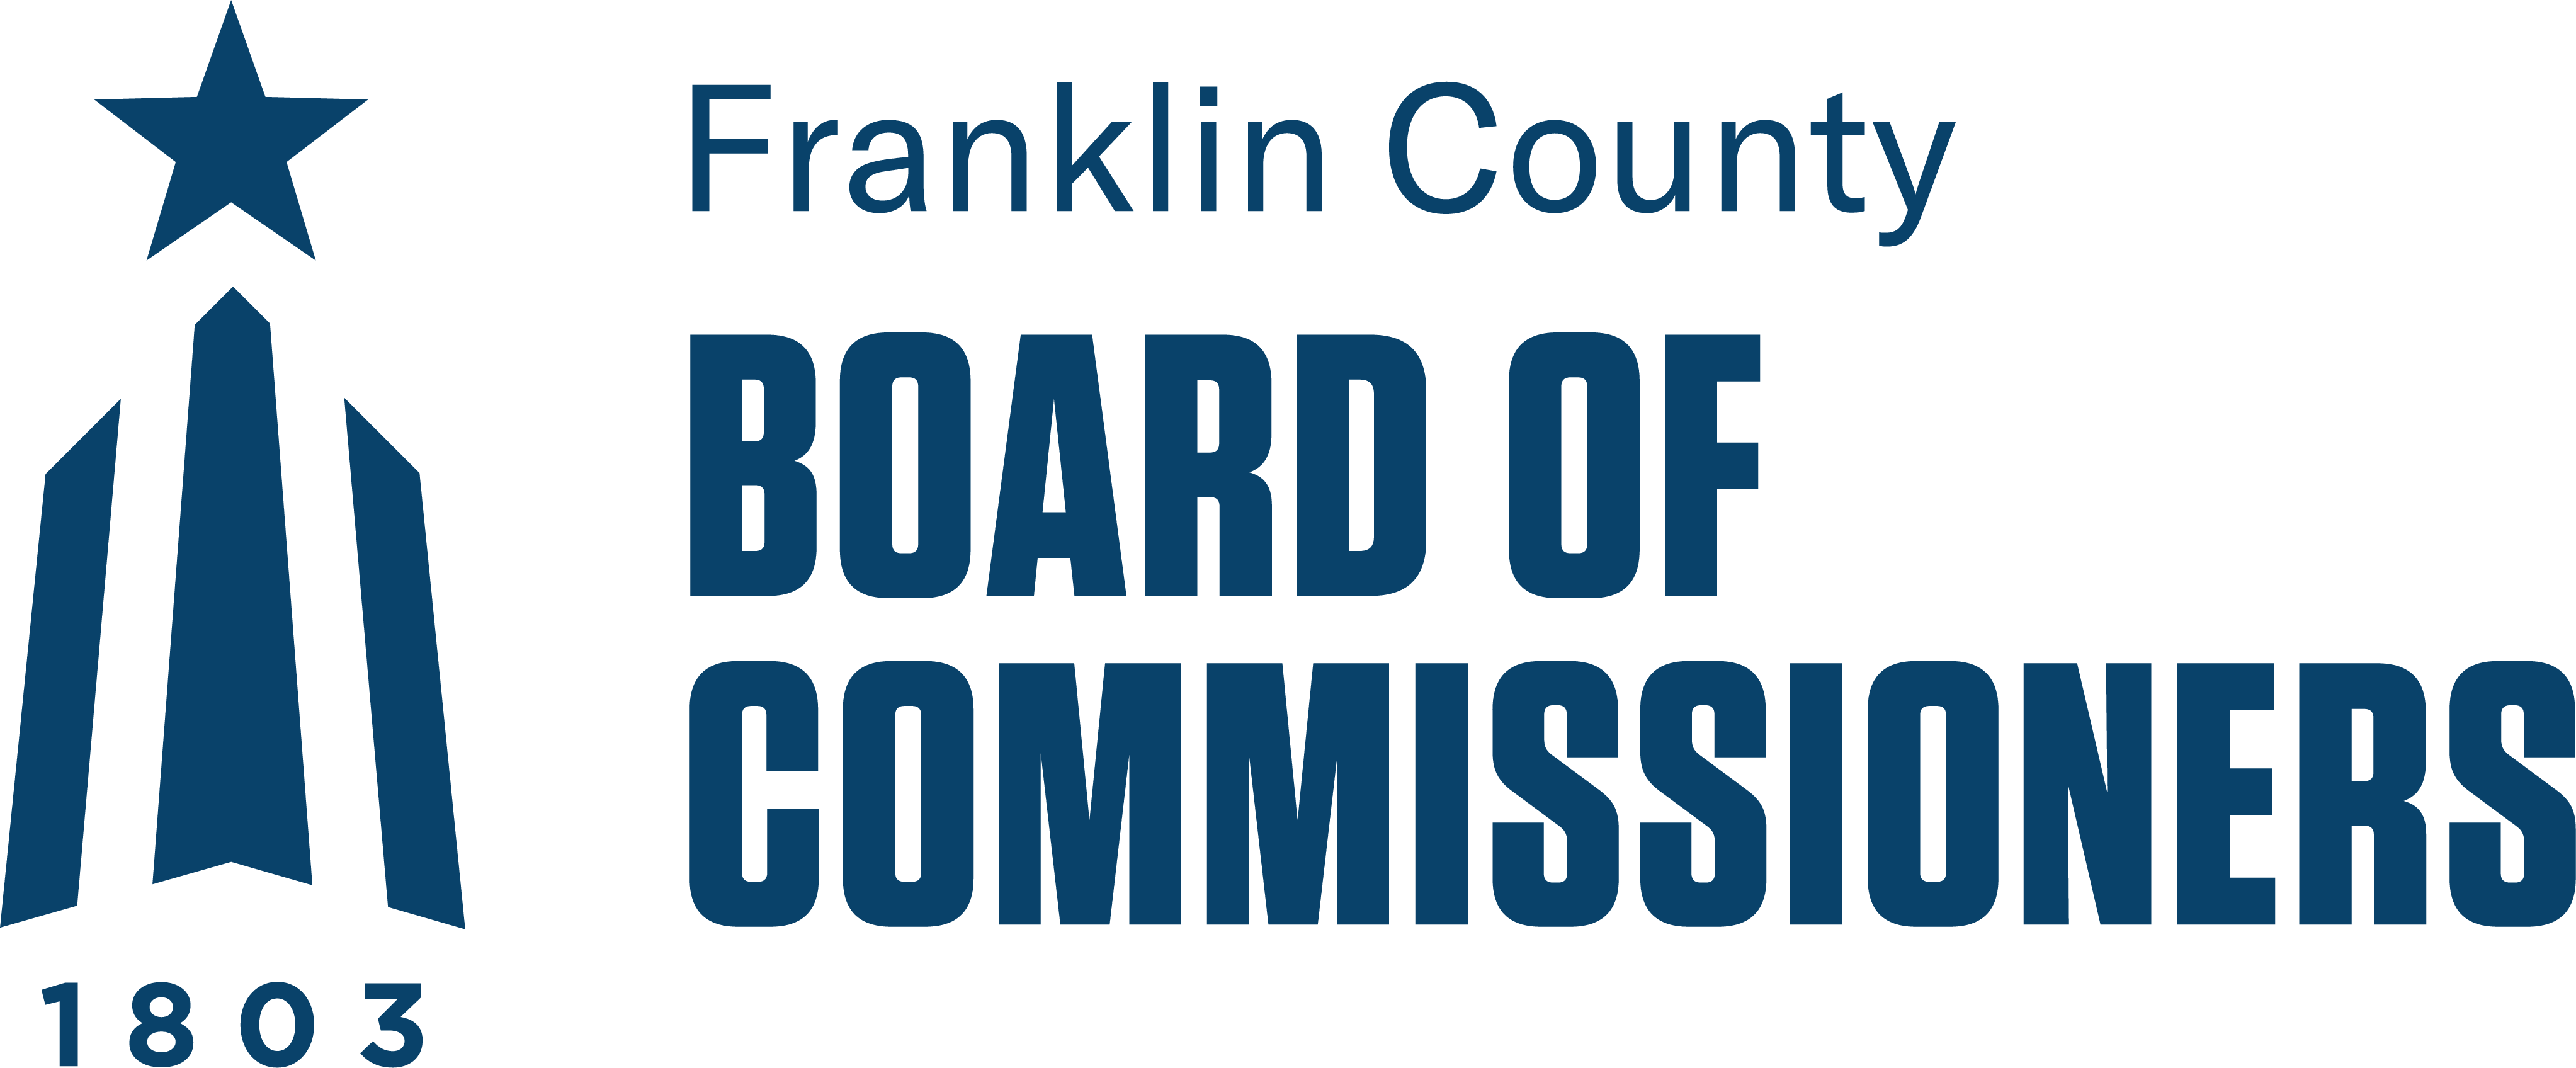 Franklin County Board of Commissioners Logo